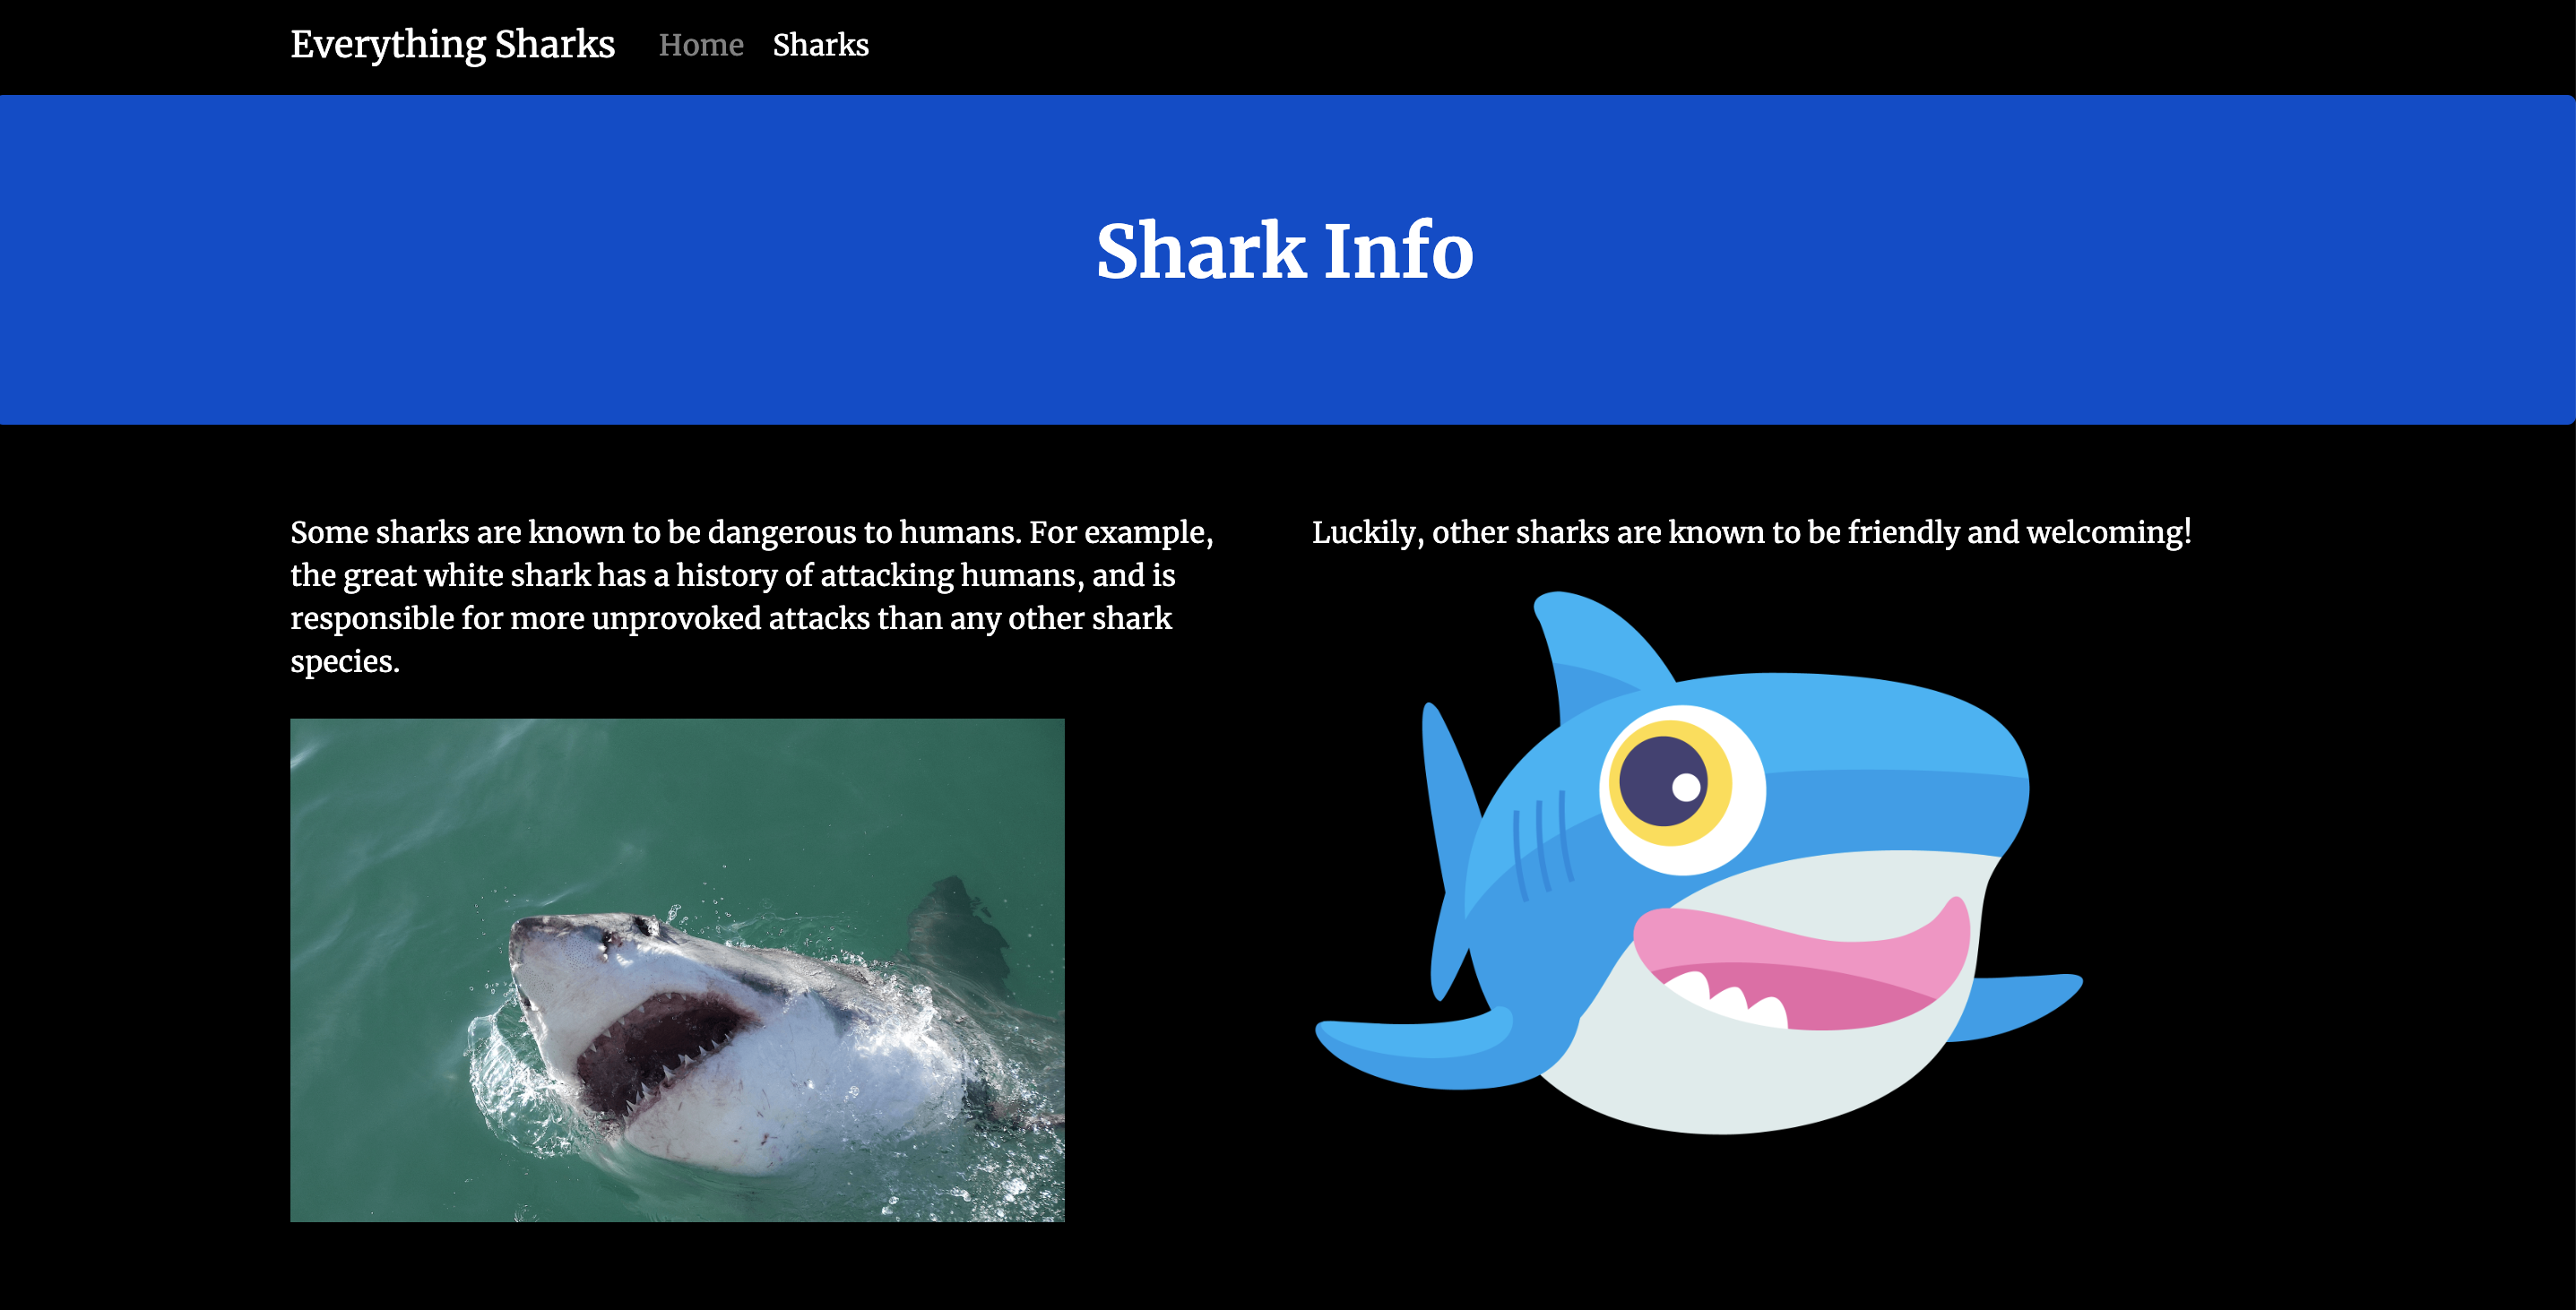 Scary Shark Info Page